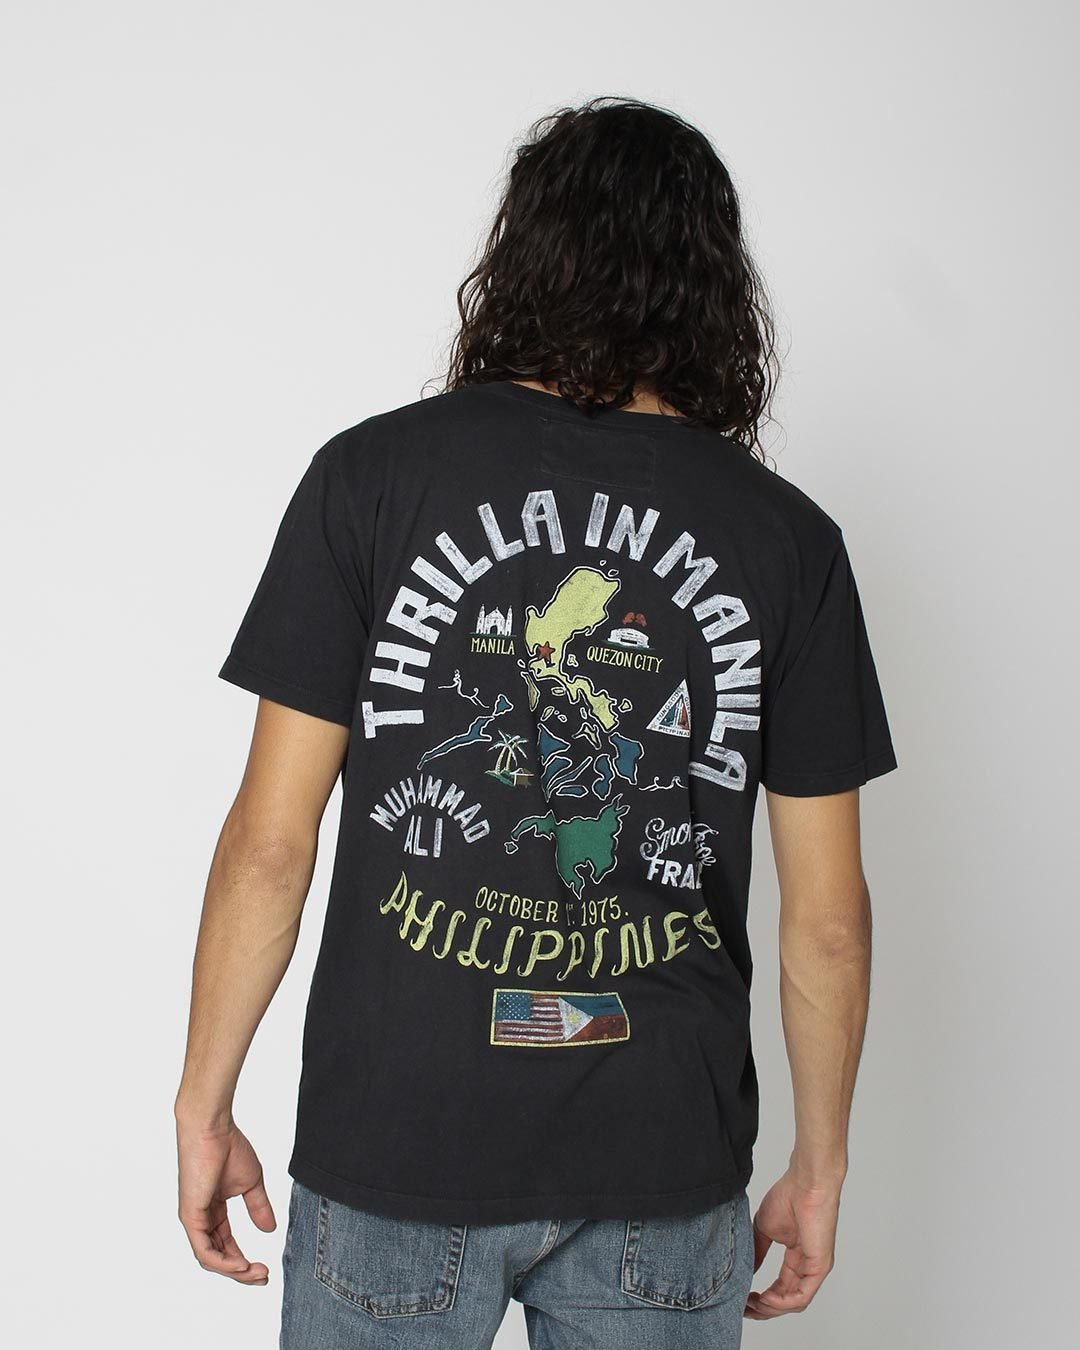 Thrilla in Manila Philippines Tee - Roots of Inc dba Roots of Fight